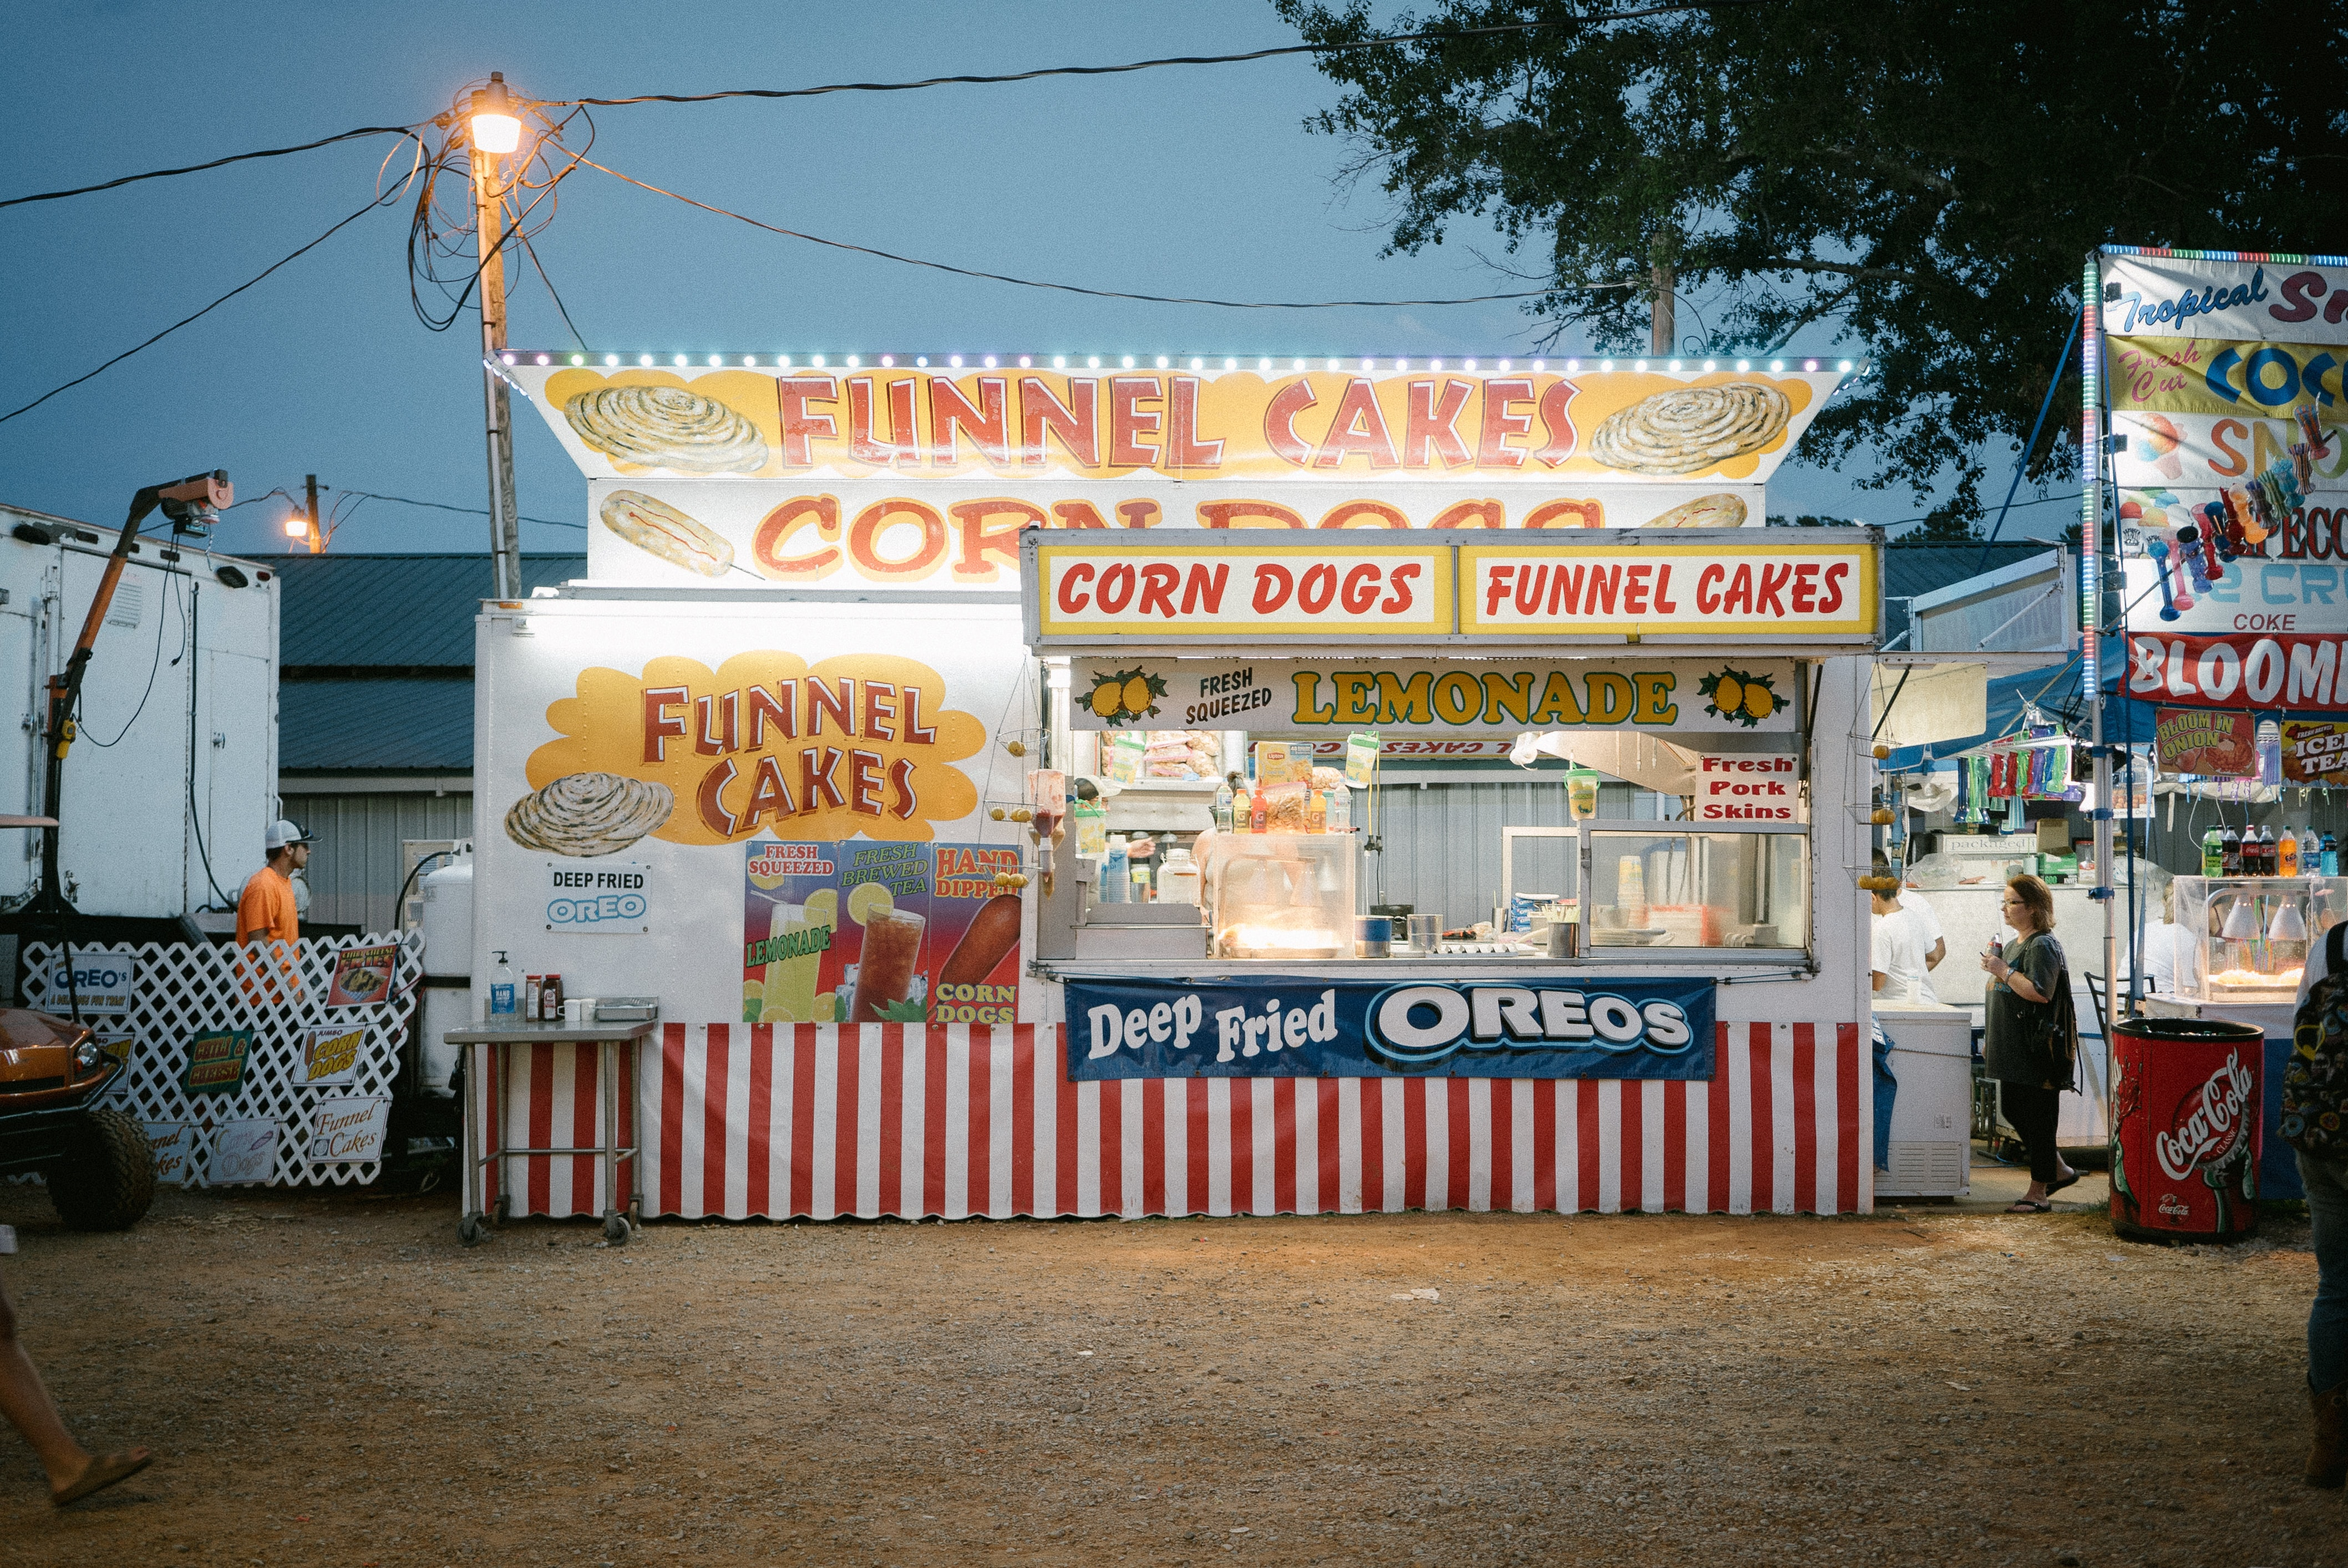 white and red Funnel Cakes storke